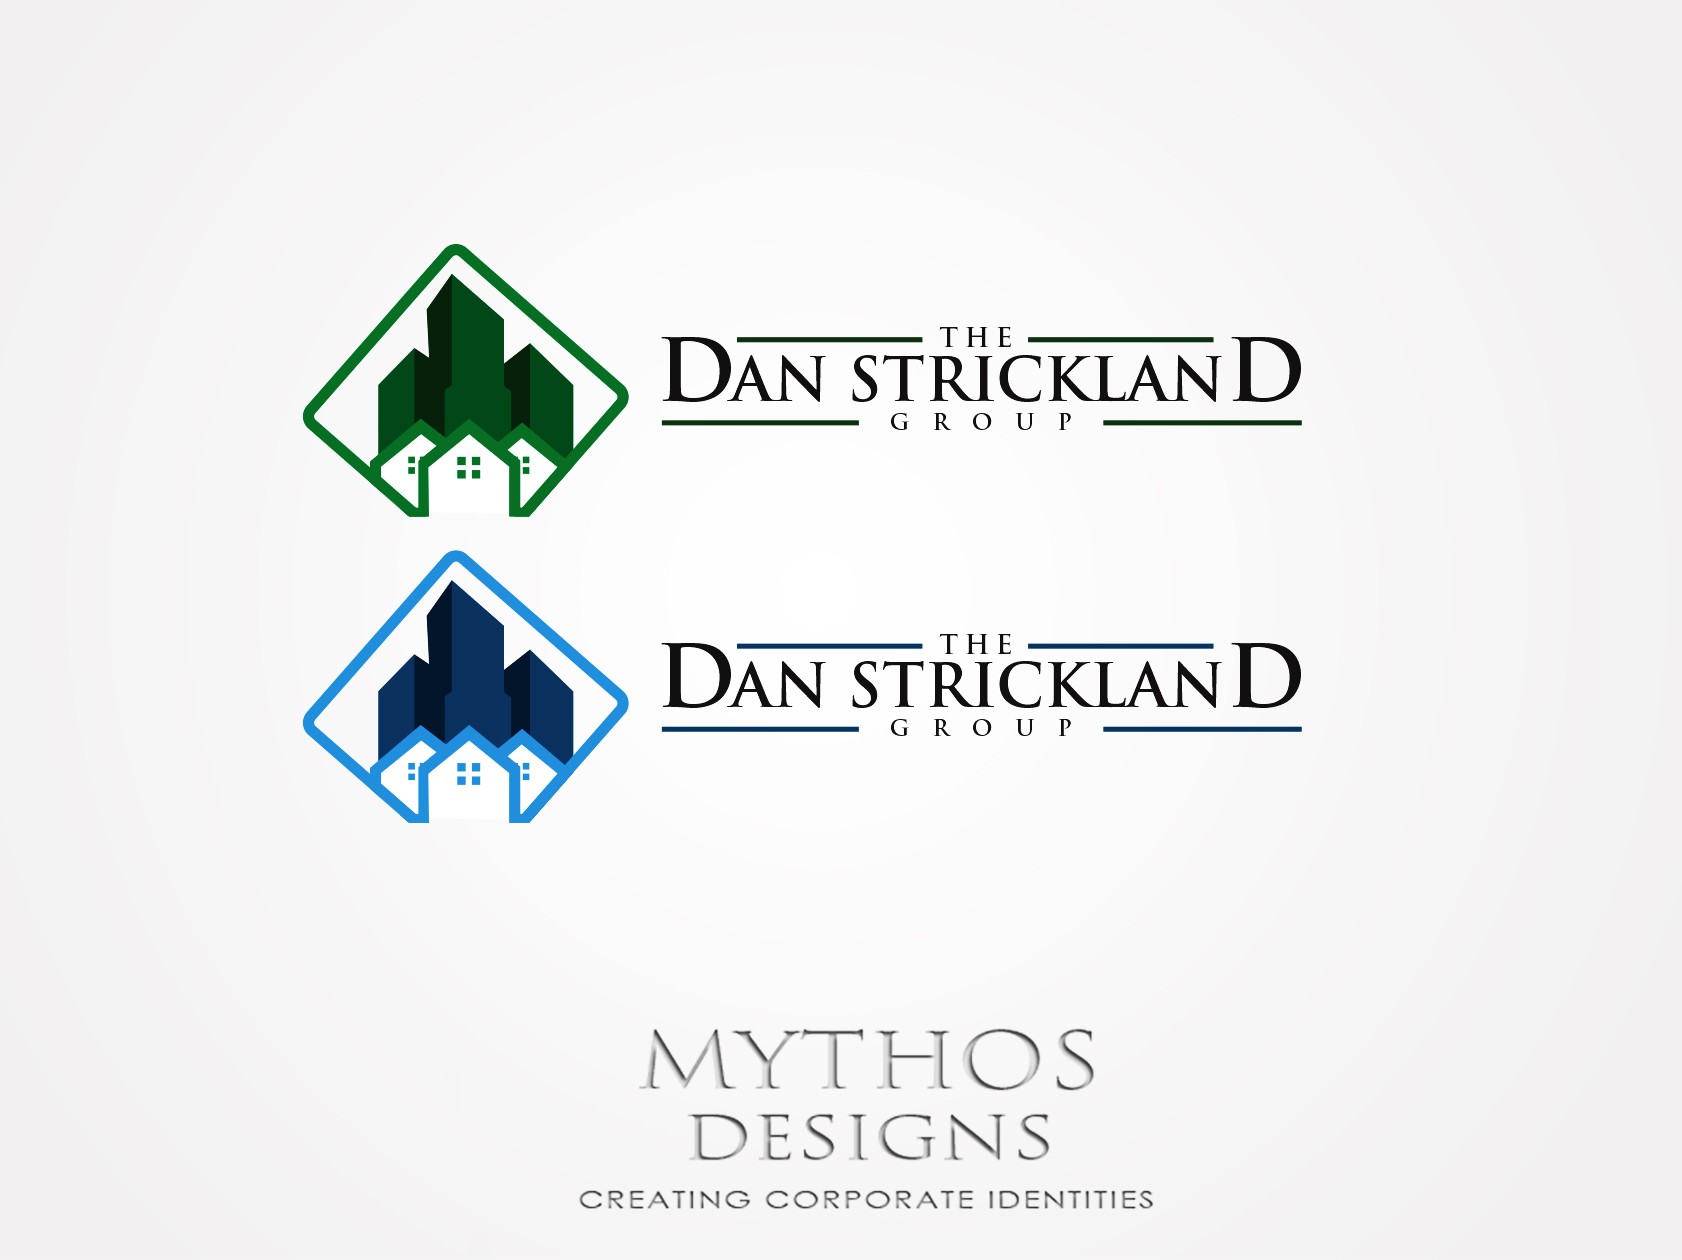 Logo Design by Mythos Designs - Entry No. 284 in the Logo Design Contest Creative Logo Design for The Dan Strickland Group.